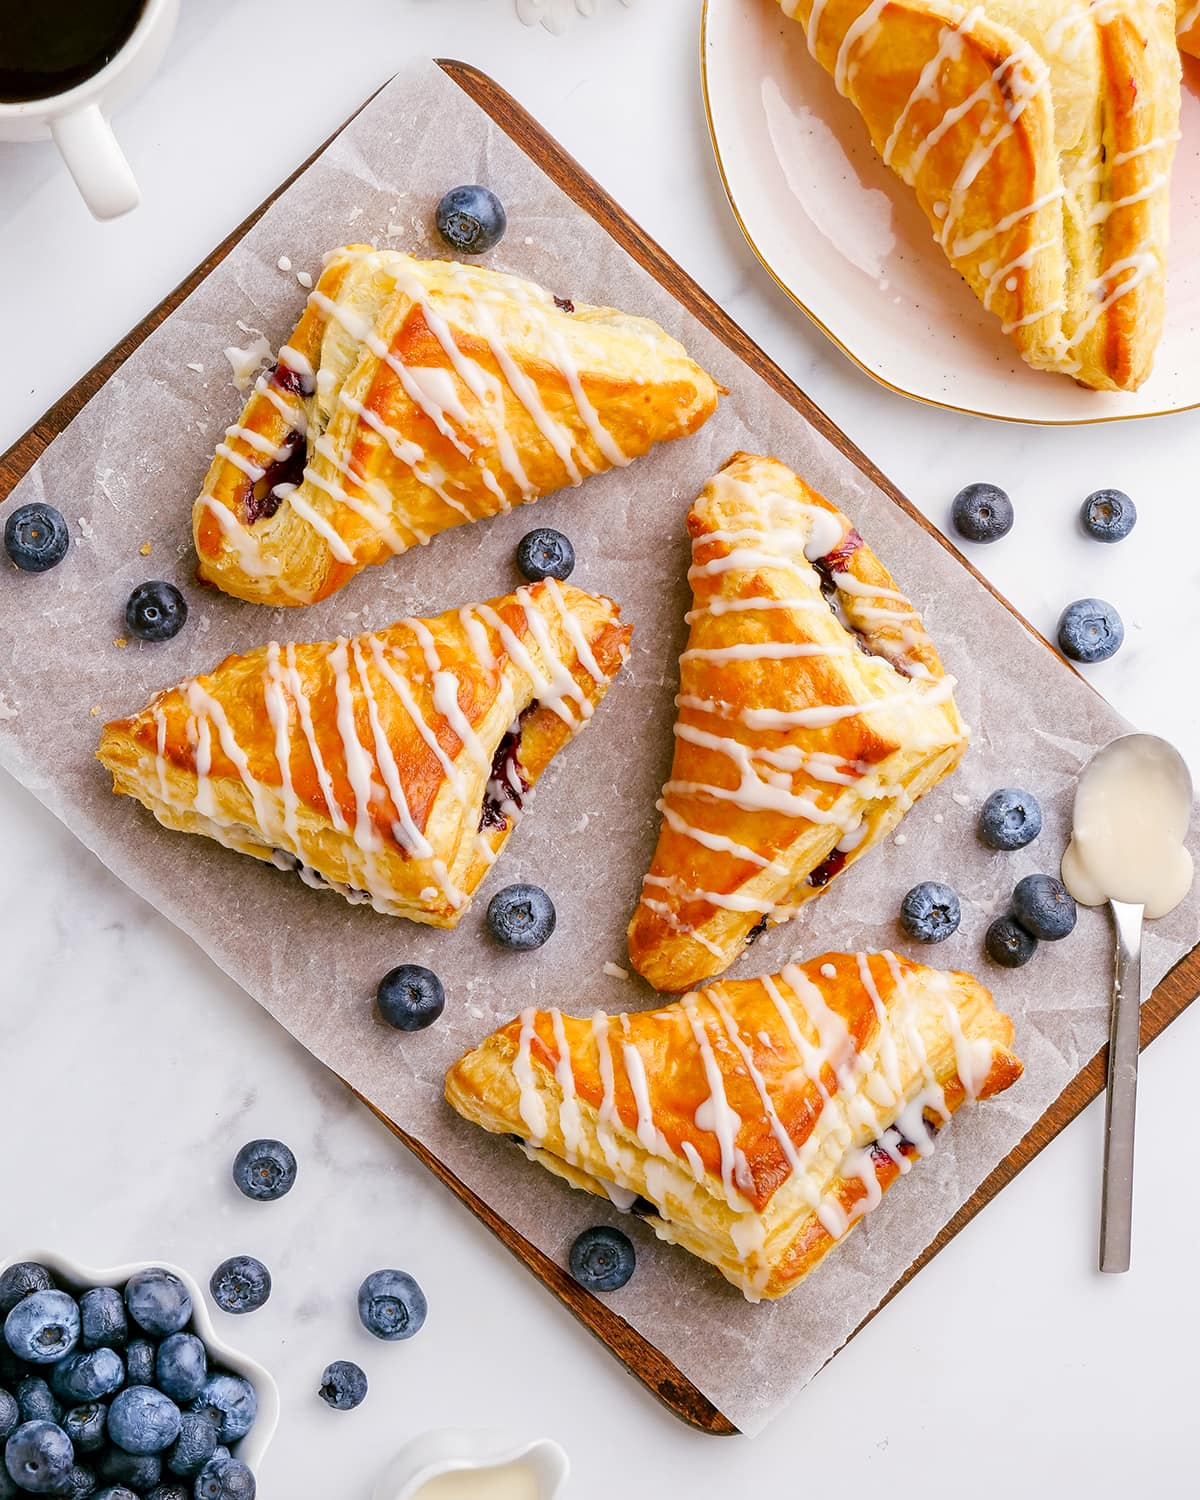 Four blueberry turnovers on a wooden tray, each drizzled with a powdered sugar glaze over the top.